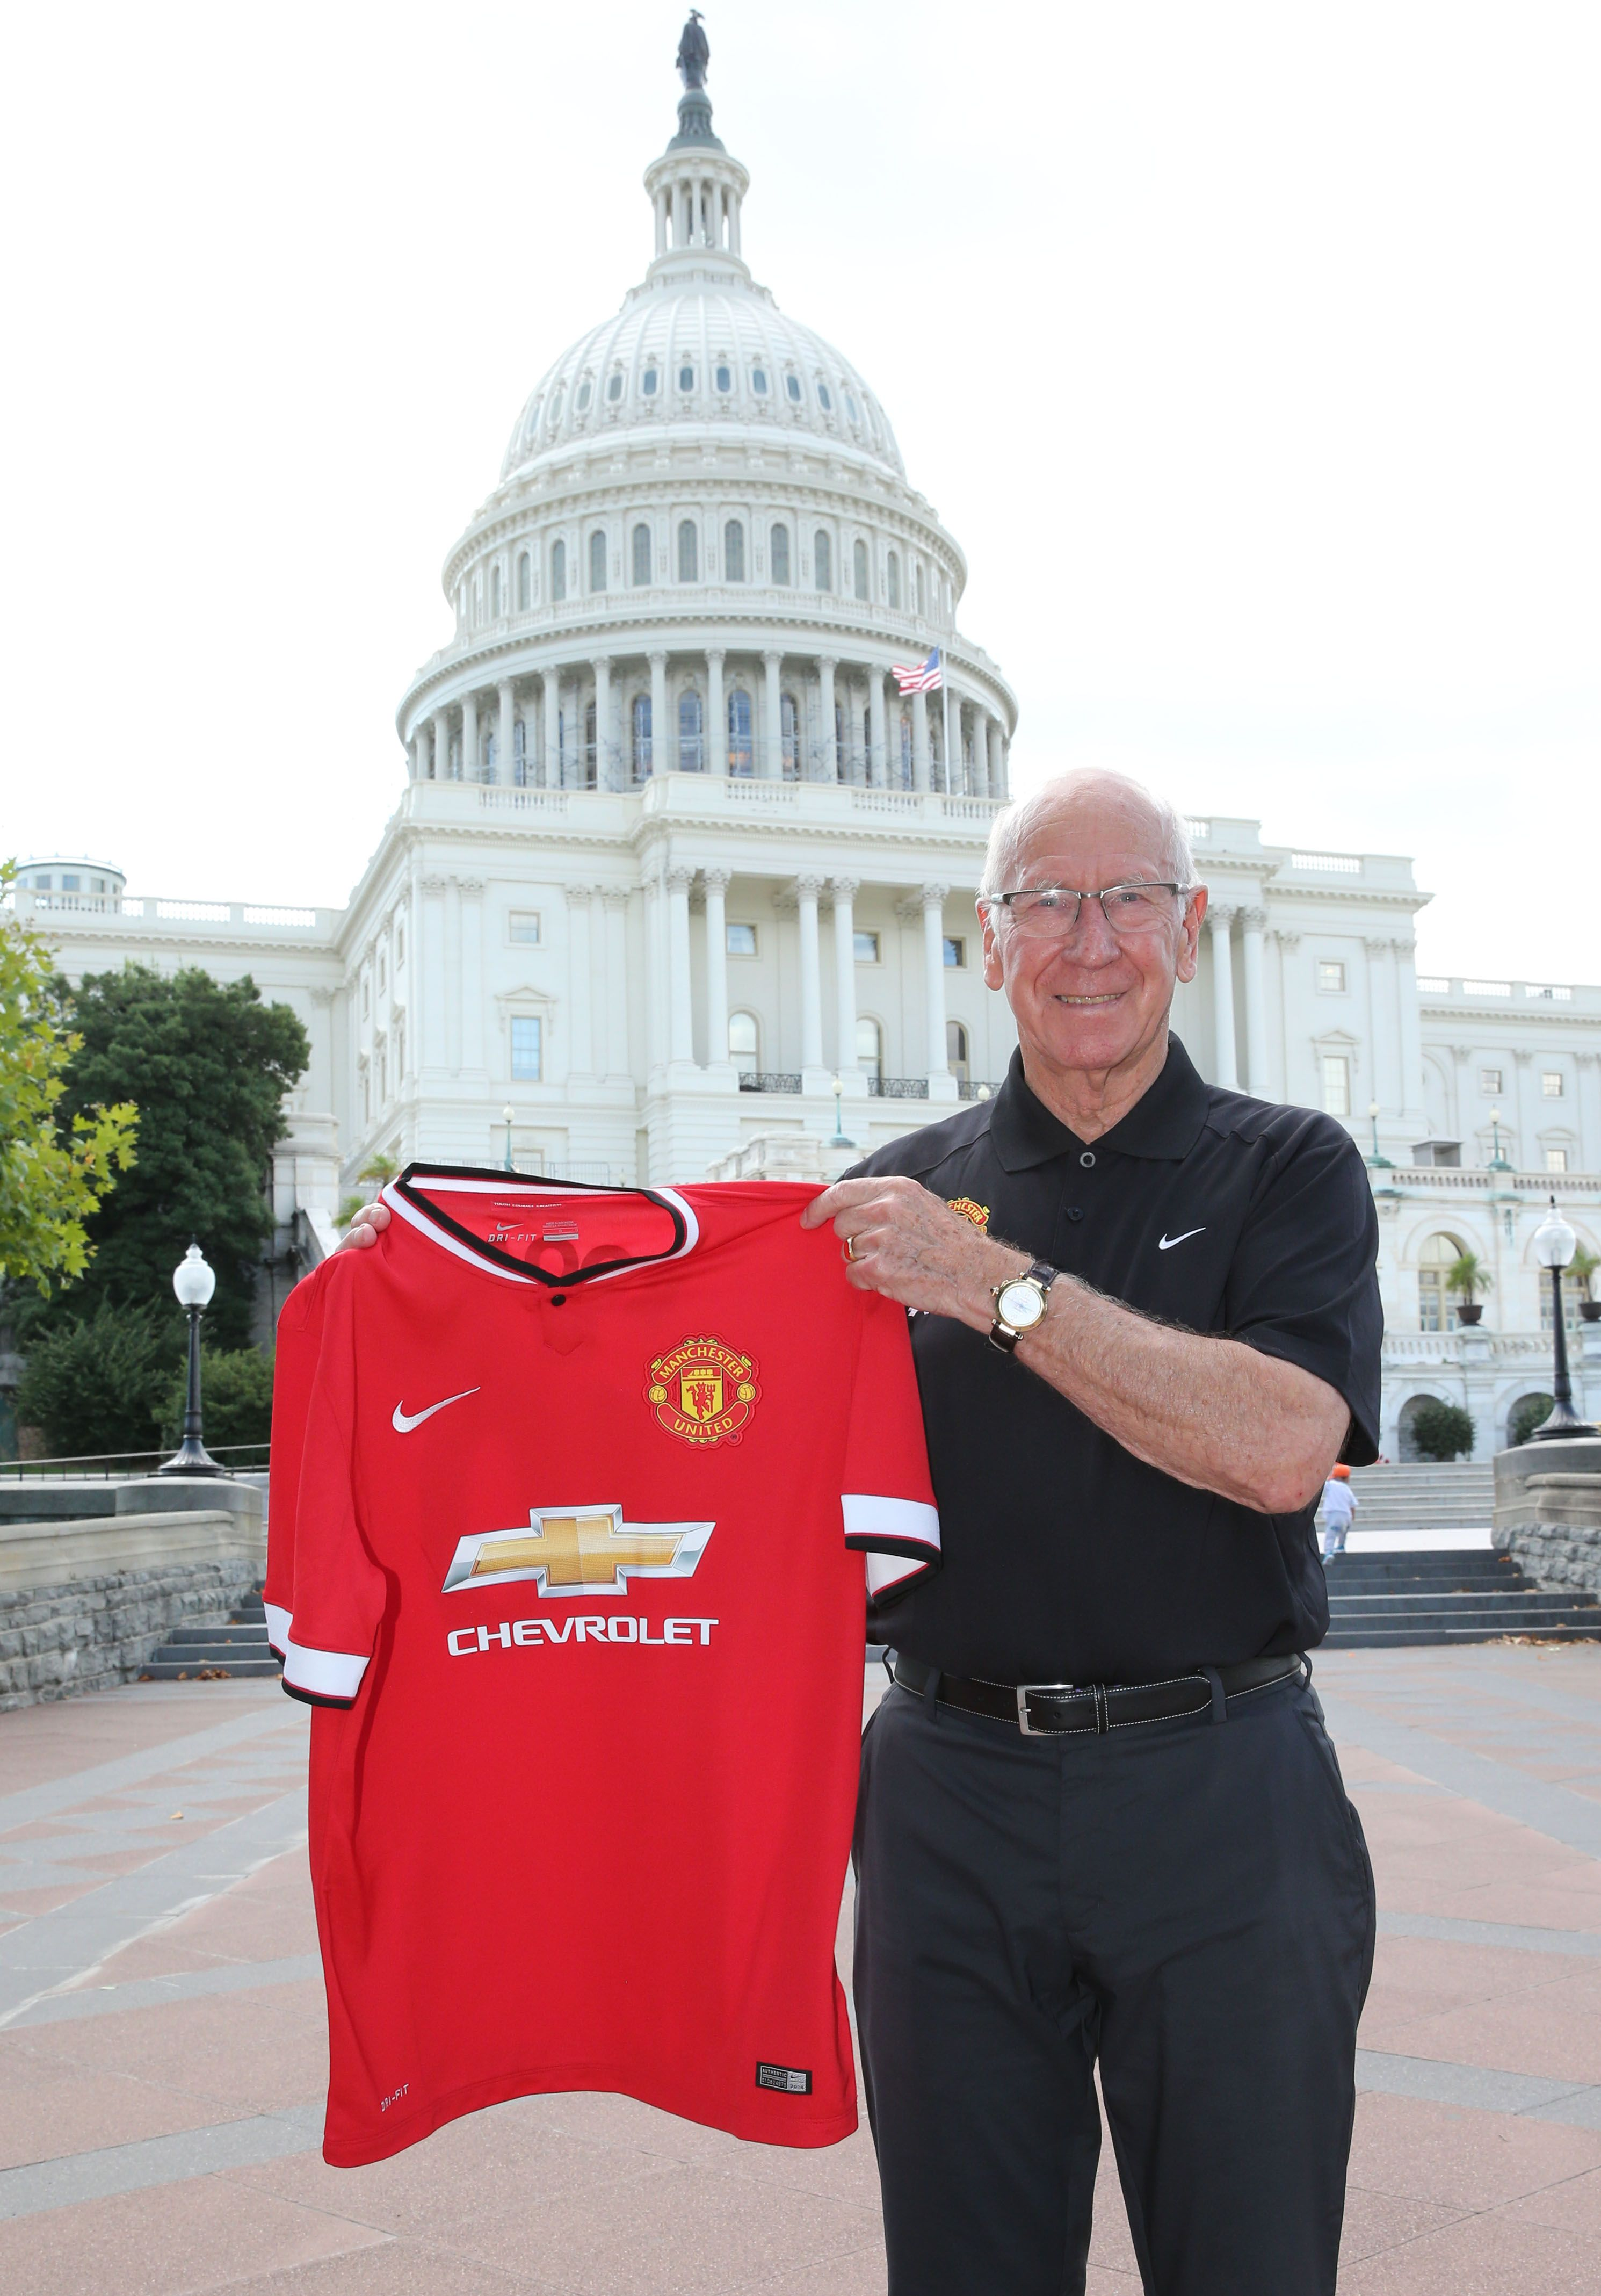 fdf501b80b5 Tour 2019 Perth - Two unmissable Man Utd matches - Optus Stadium.  manutd  legend Sir Bobby Charlton visits the United States Capitol during  mutour.